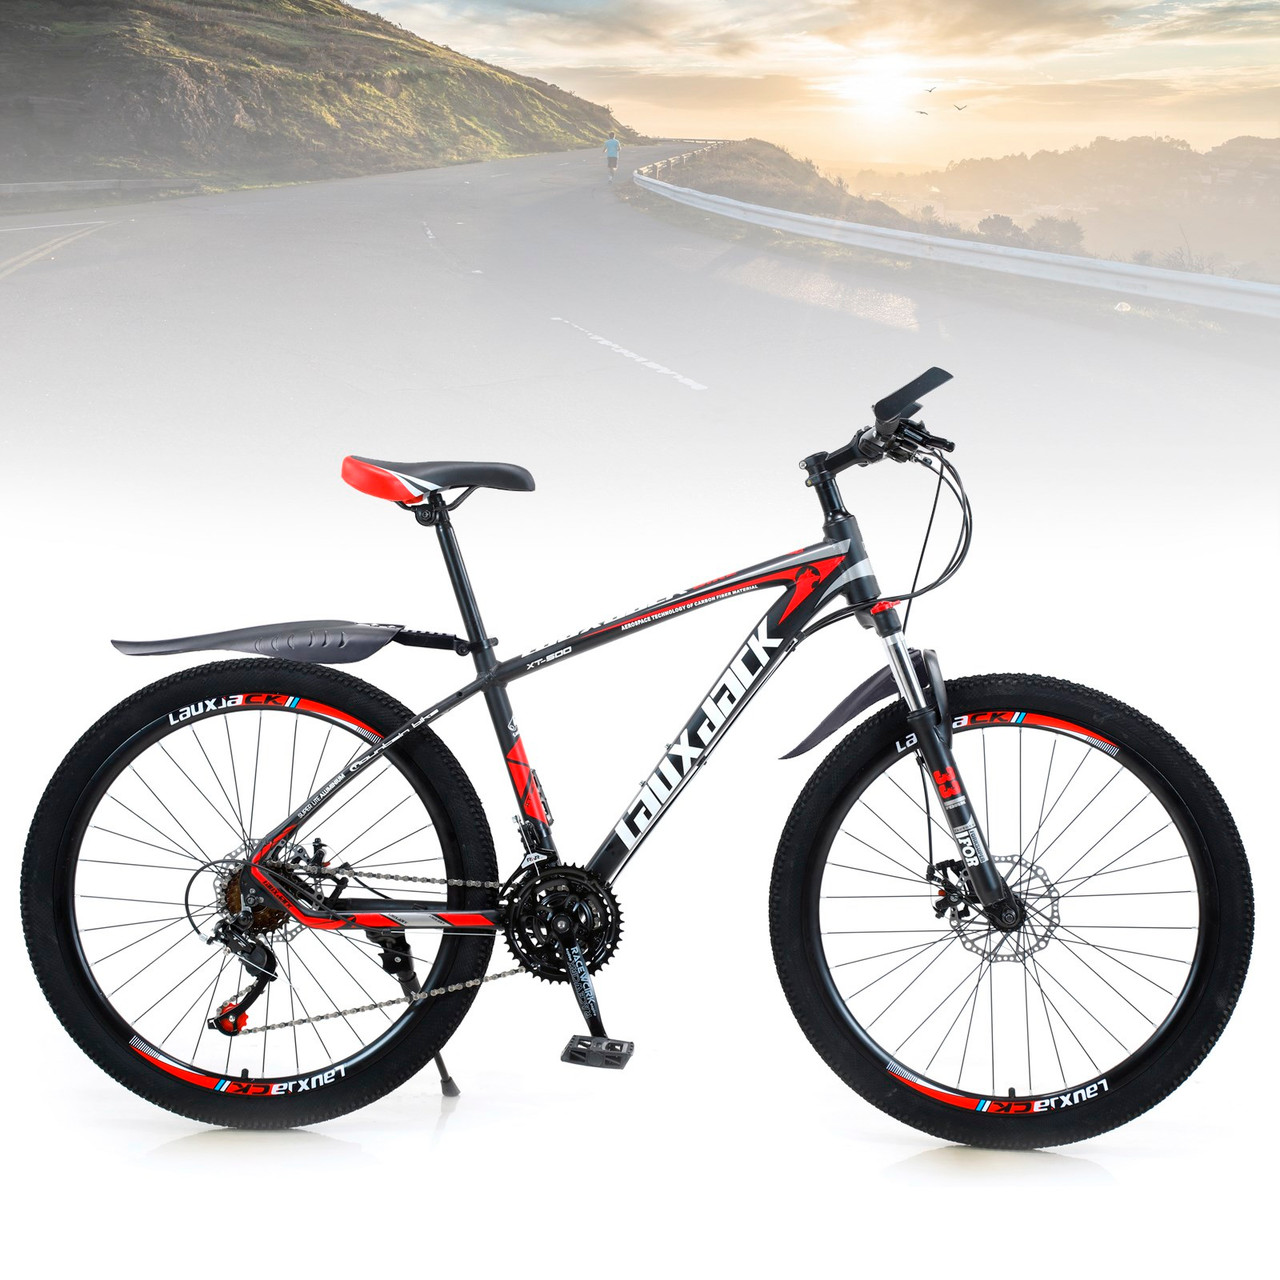 27.5 inches Wheels 21 Speed Unisex Adult Mountain Bike Bicycle MTB Black+Red